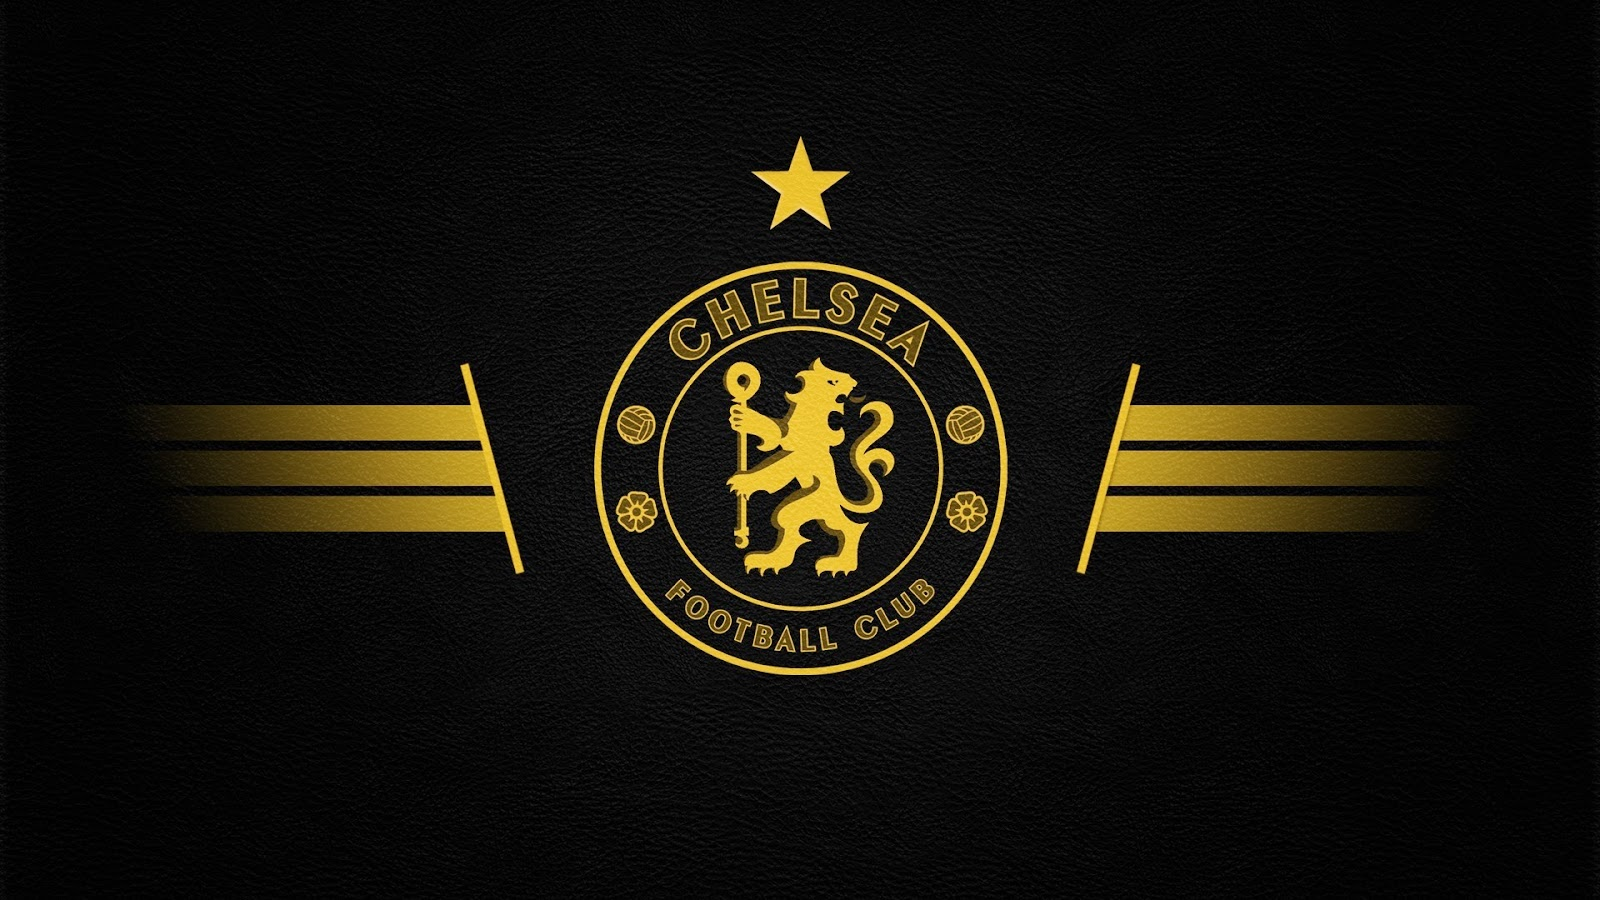 Chelsea HD Wallpapers 1080p